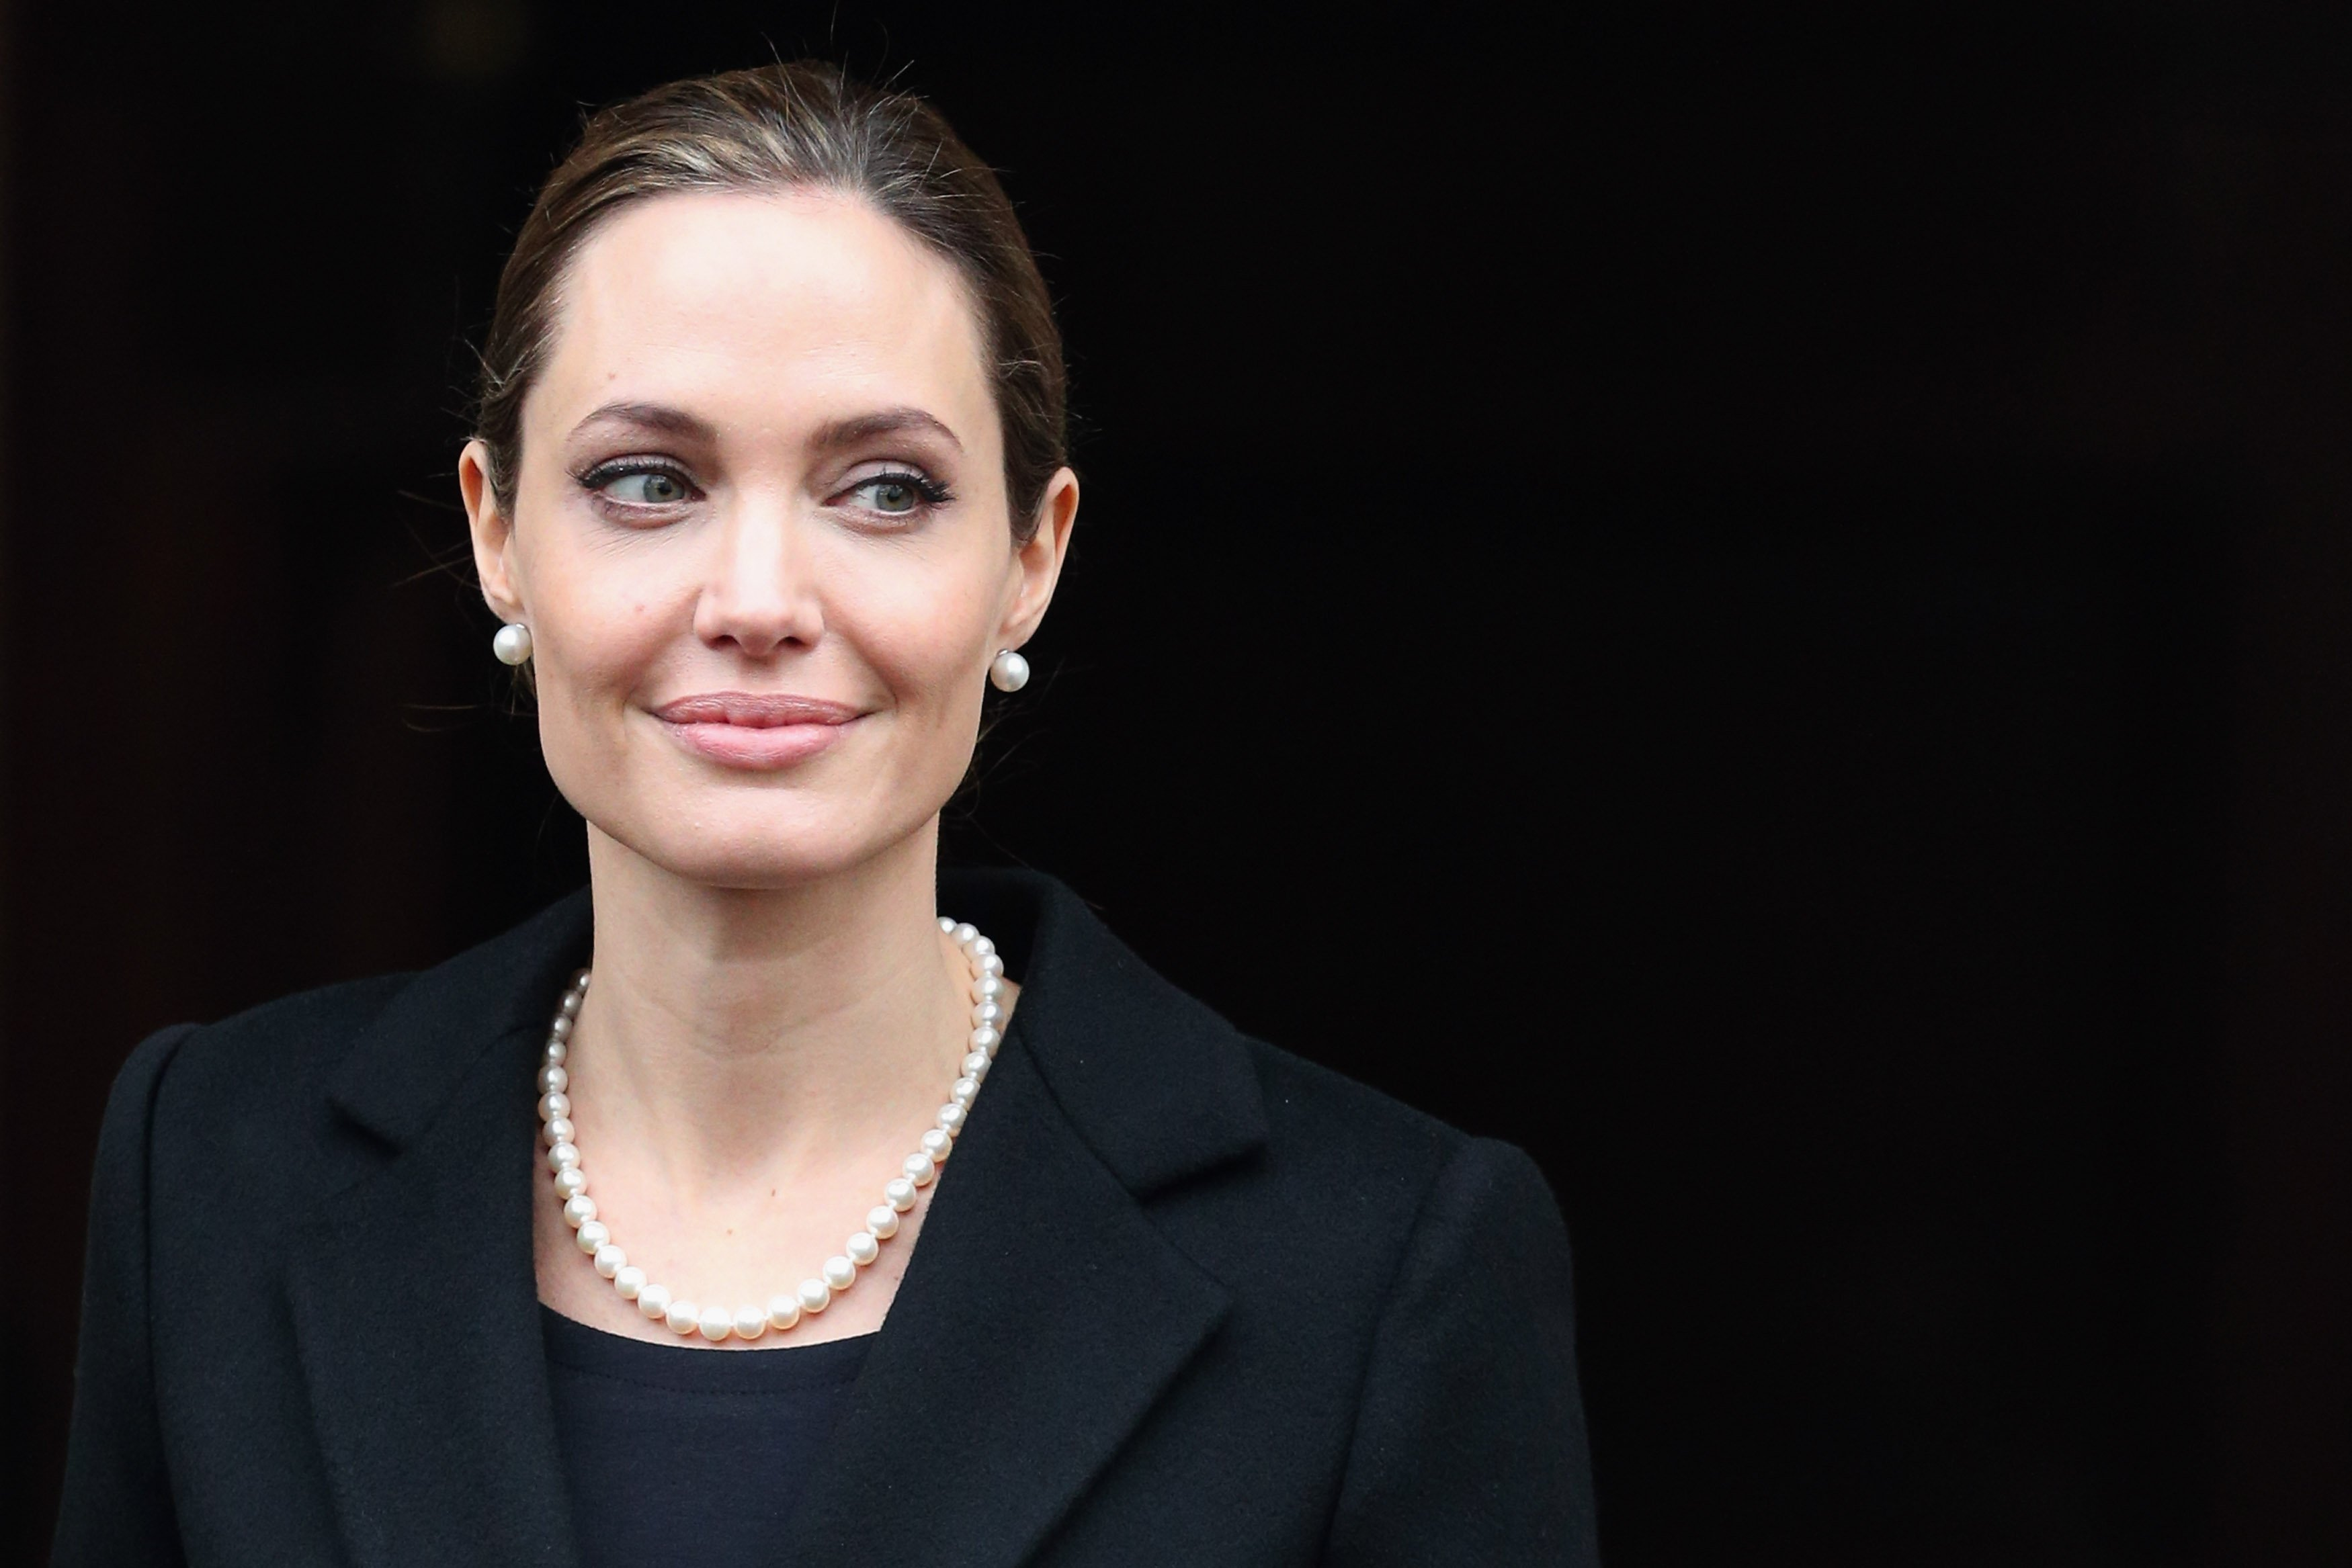 Image Source: Getty Images| A photo of Angelina Jolie